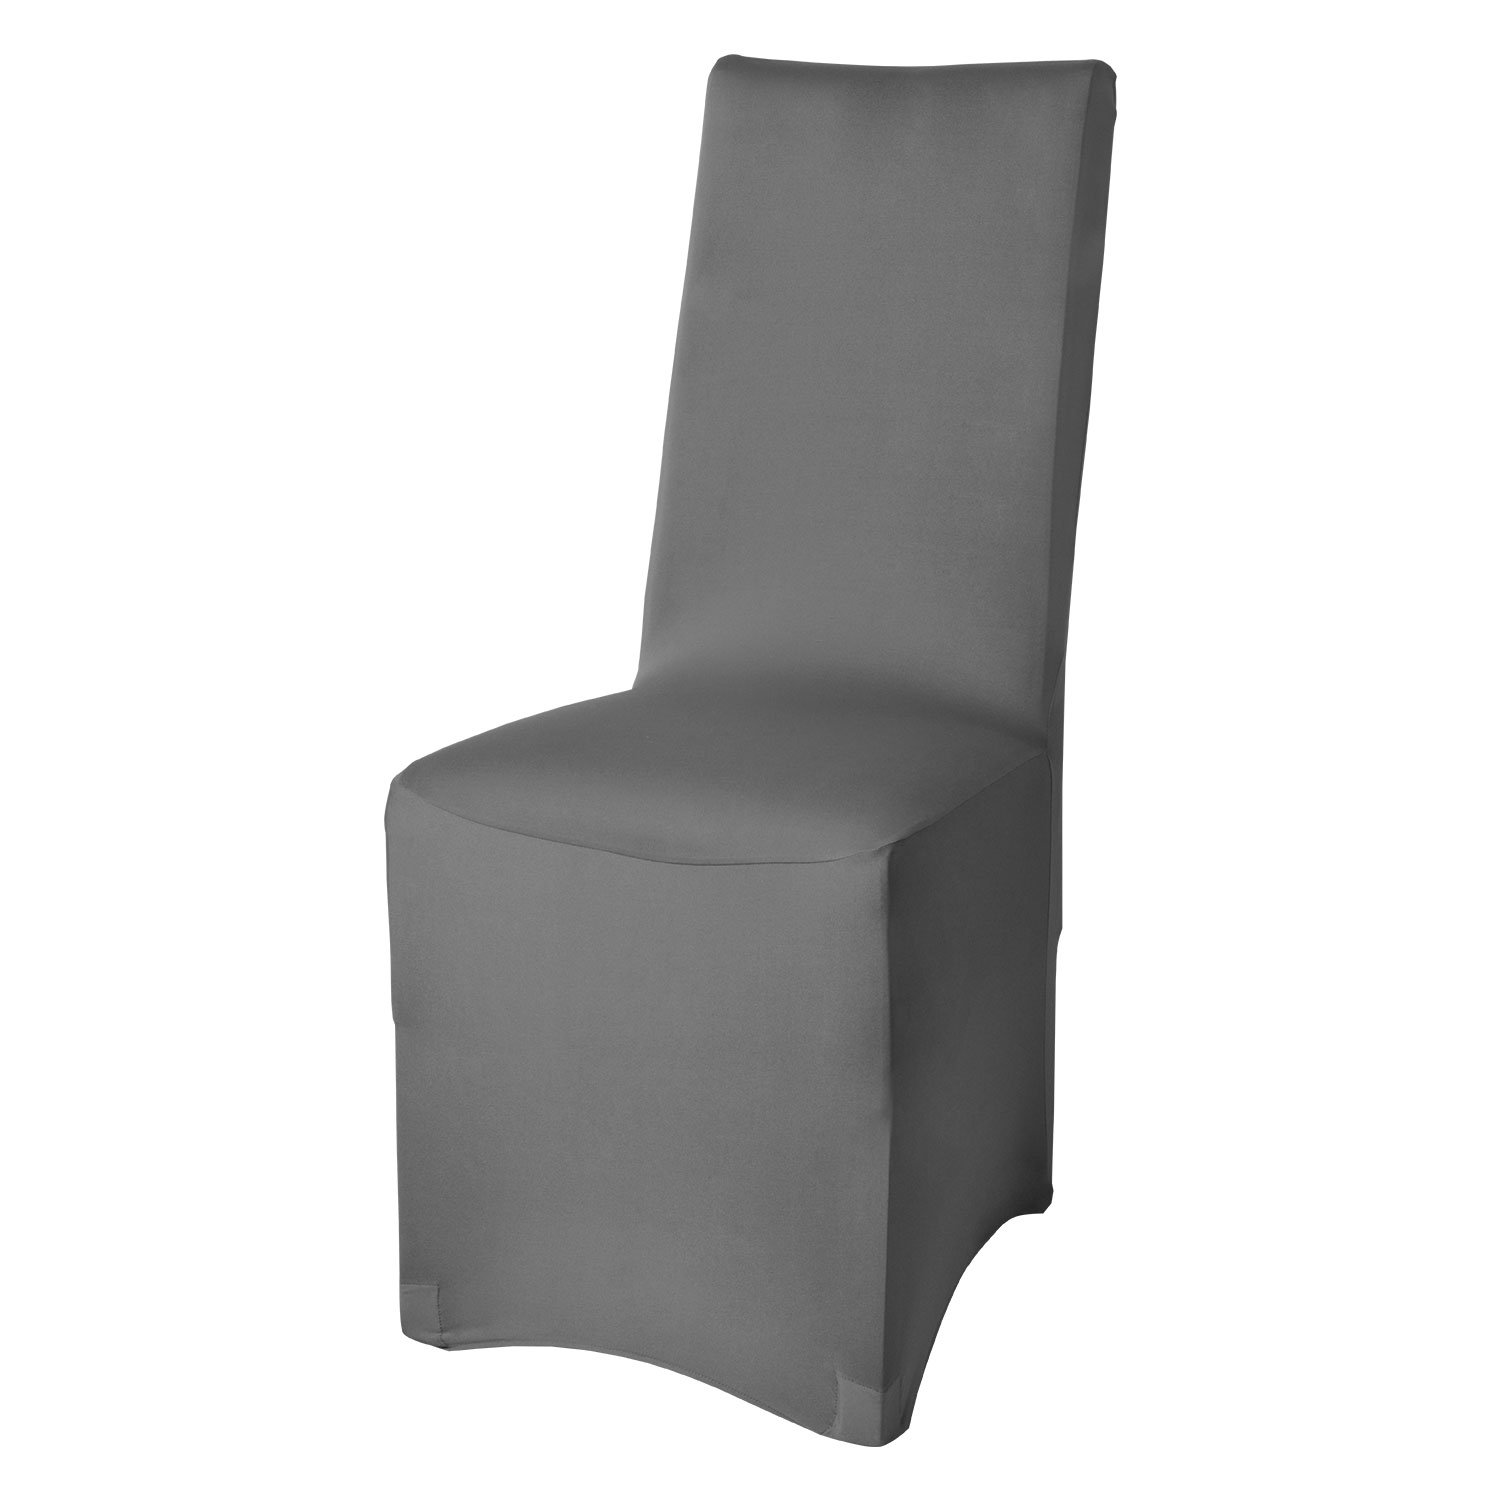 Beautissu Stretch Chair Cover Leona Dining Chair Slipcover 45x95cm Bi-Elastic Fitted Cover Chair Protection Brown